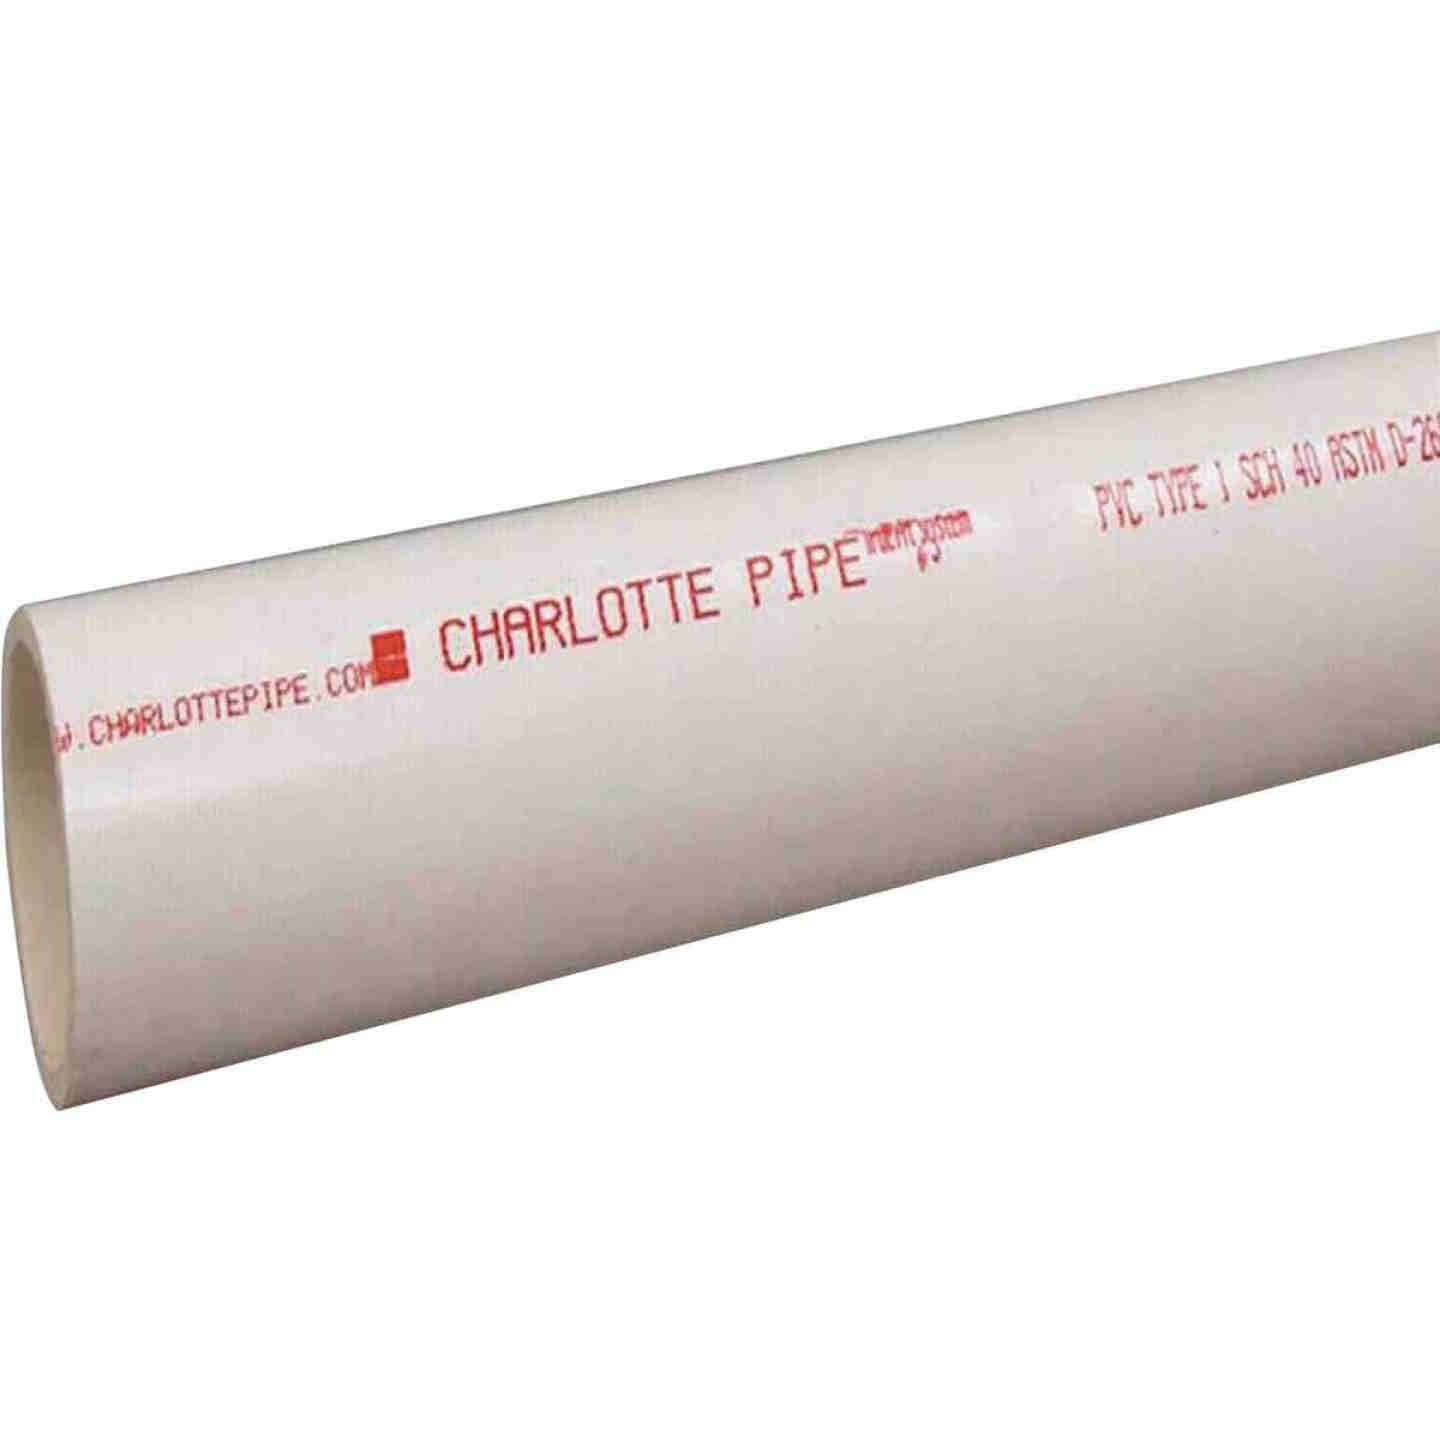 Charlotte Pipe 6 In. x 20 Ft. PVC DWV/Pressure Dual Rated Schedule 40 Pipe Image 1